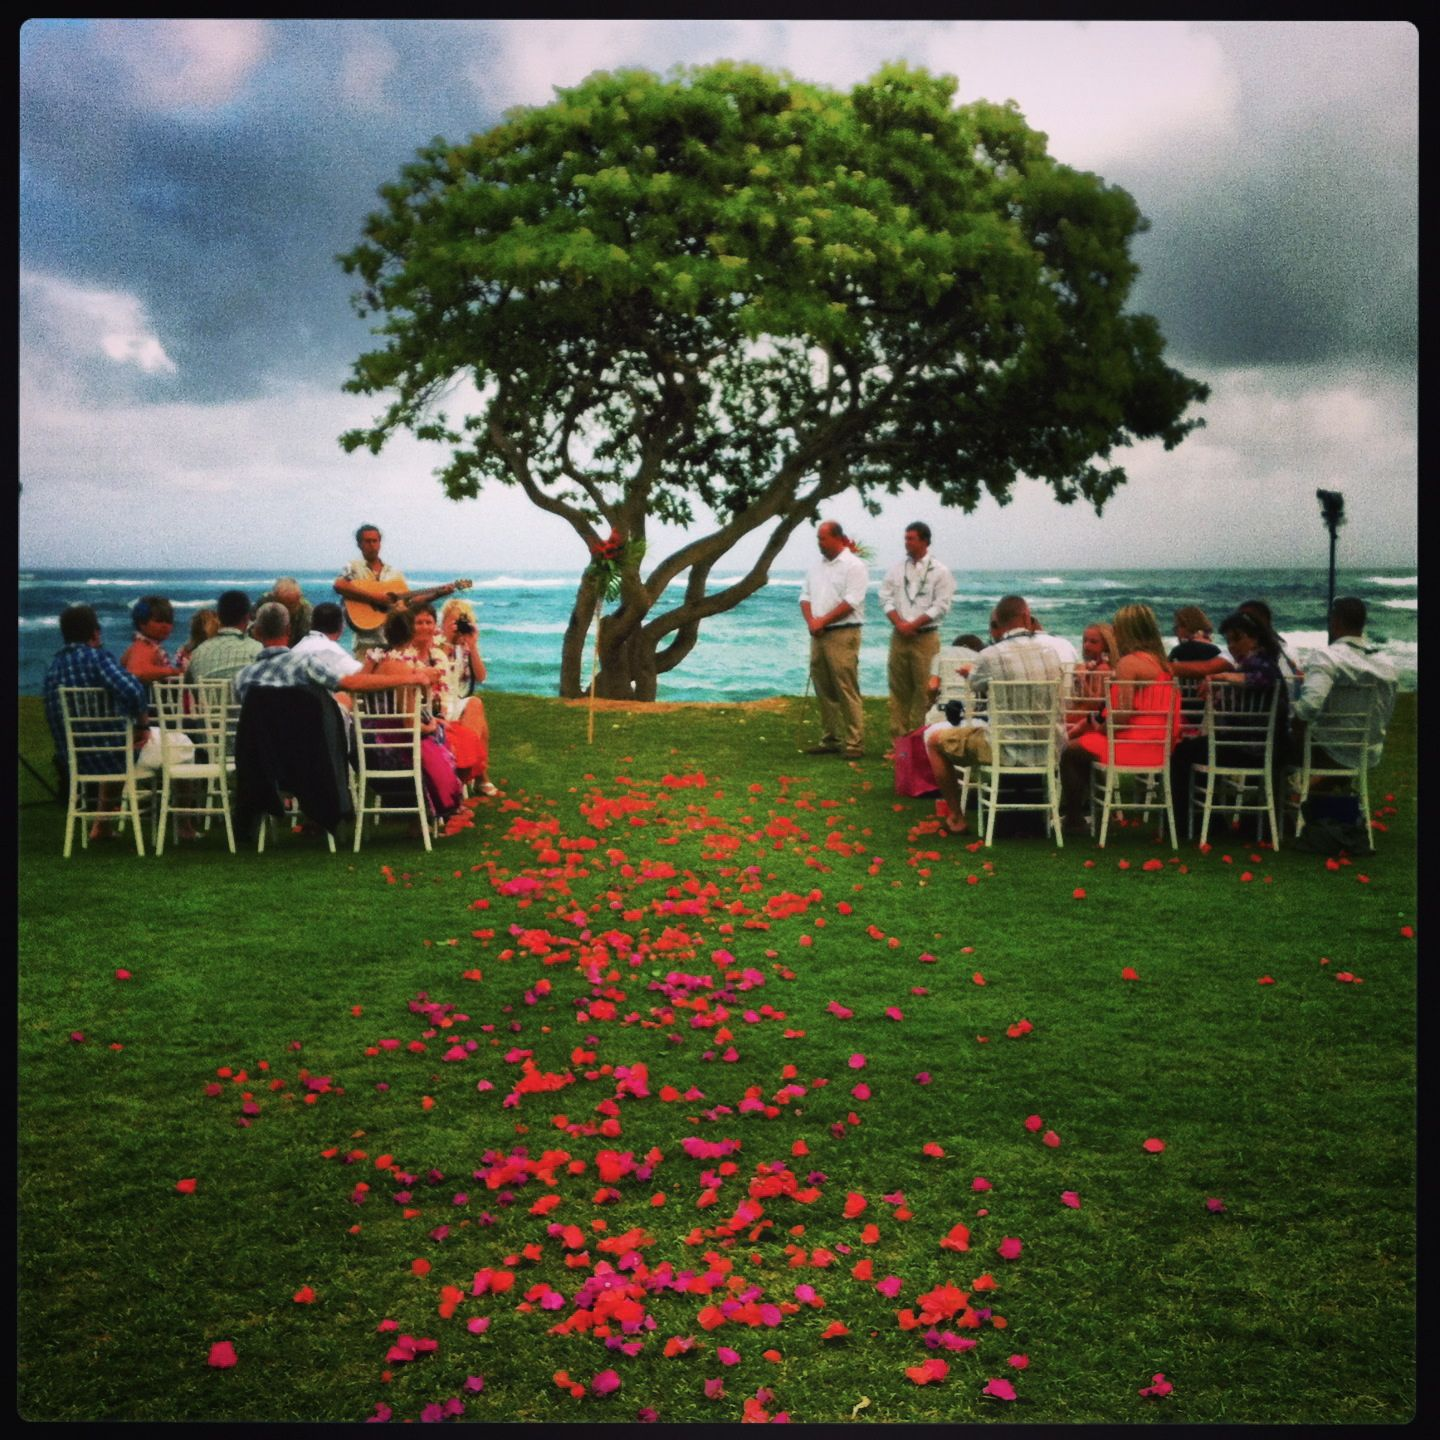 Wedding Ceremony And Reception In Same Location: Create Option For Ceremony And Reception